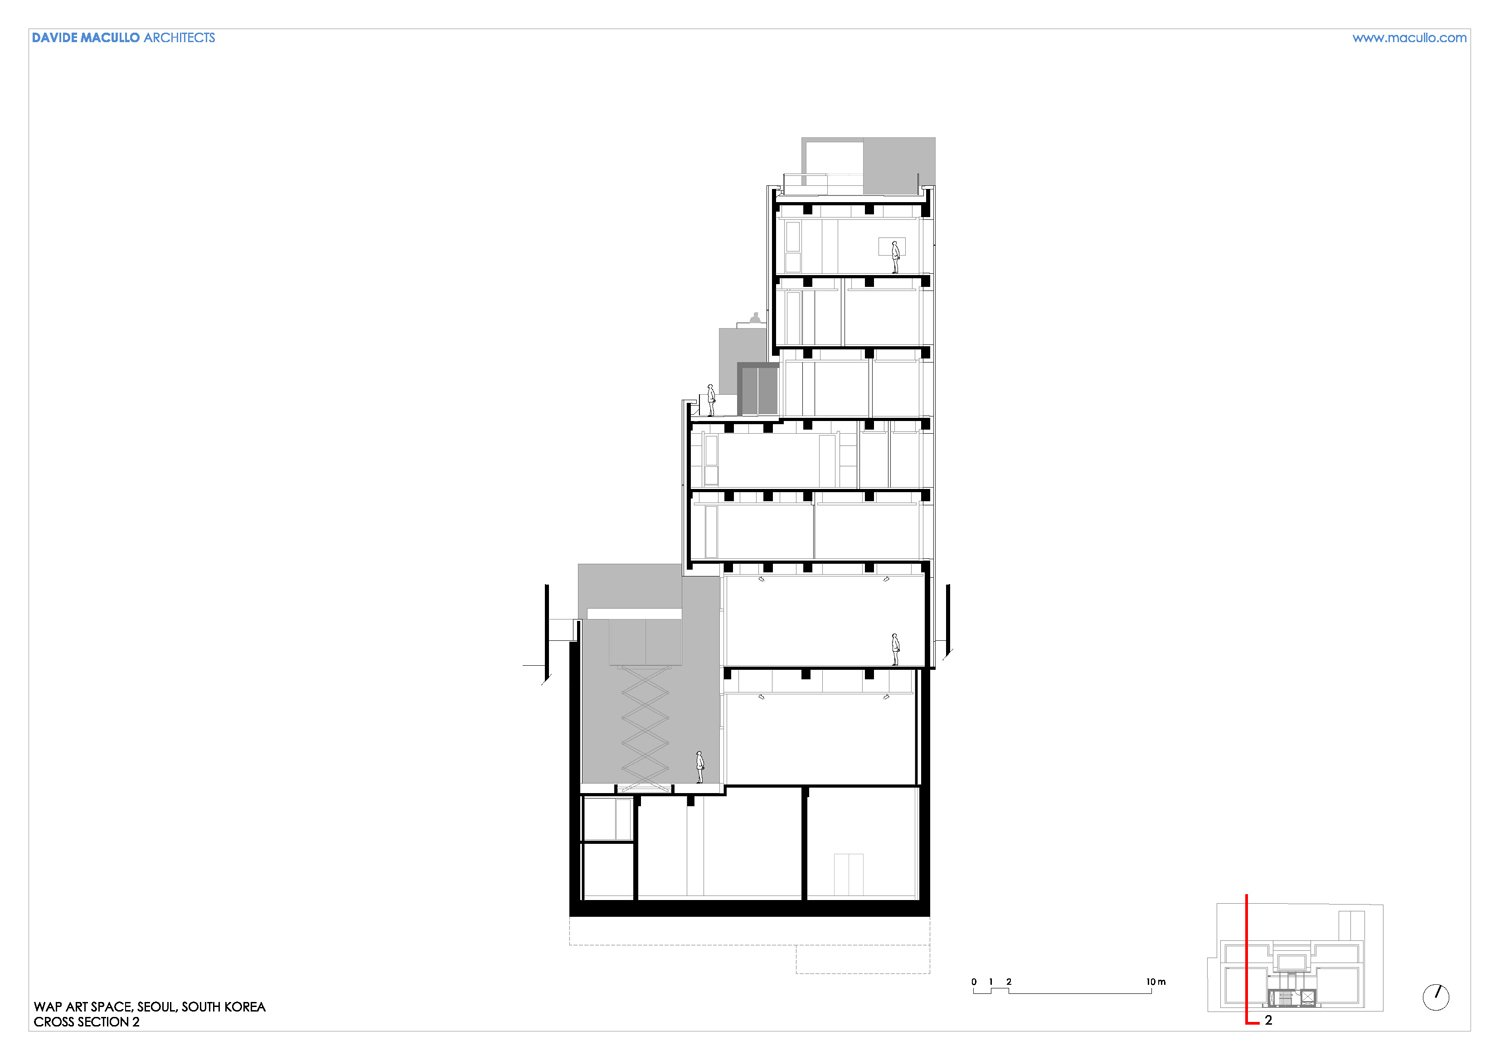 Cross section 2 Davide Macullo Architects SA}